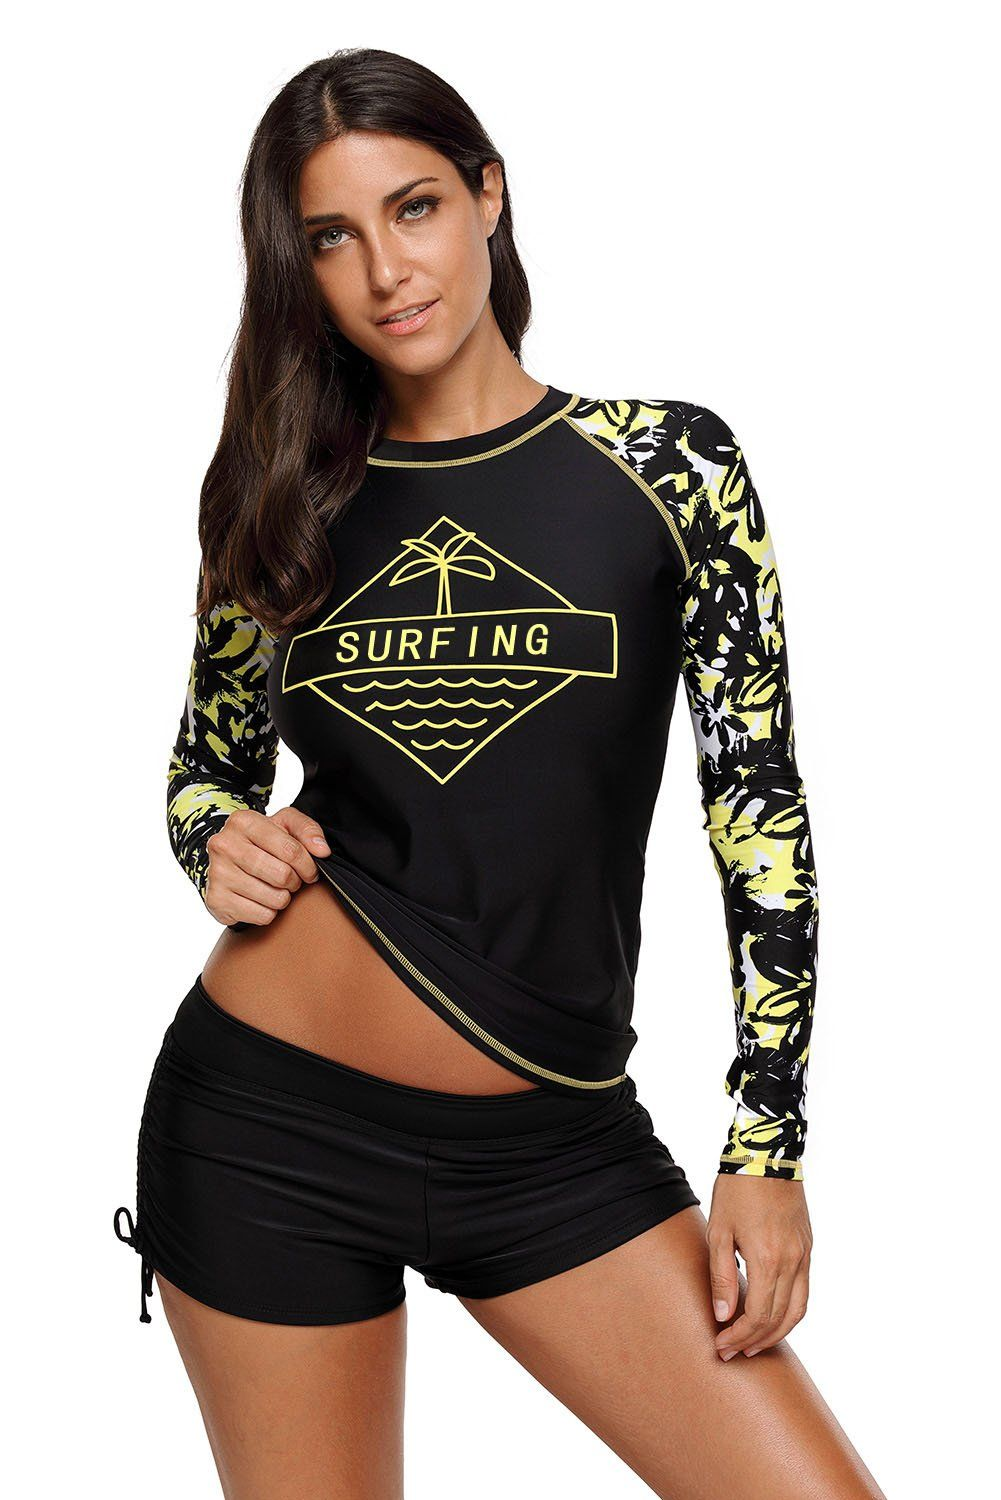 66ce43a633786 Surfing the Holiday Long Sleeve Rashguard Top. Surfing the Holiday Long  Sleeve Rashguard Top Tankini Top